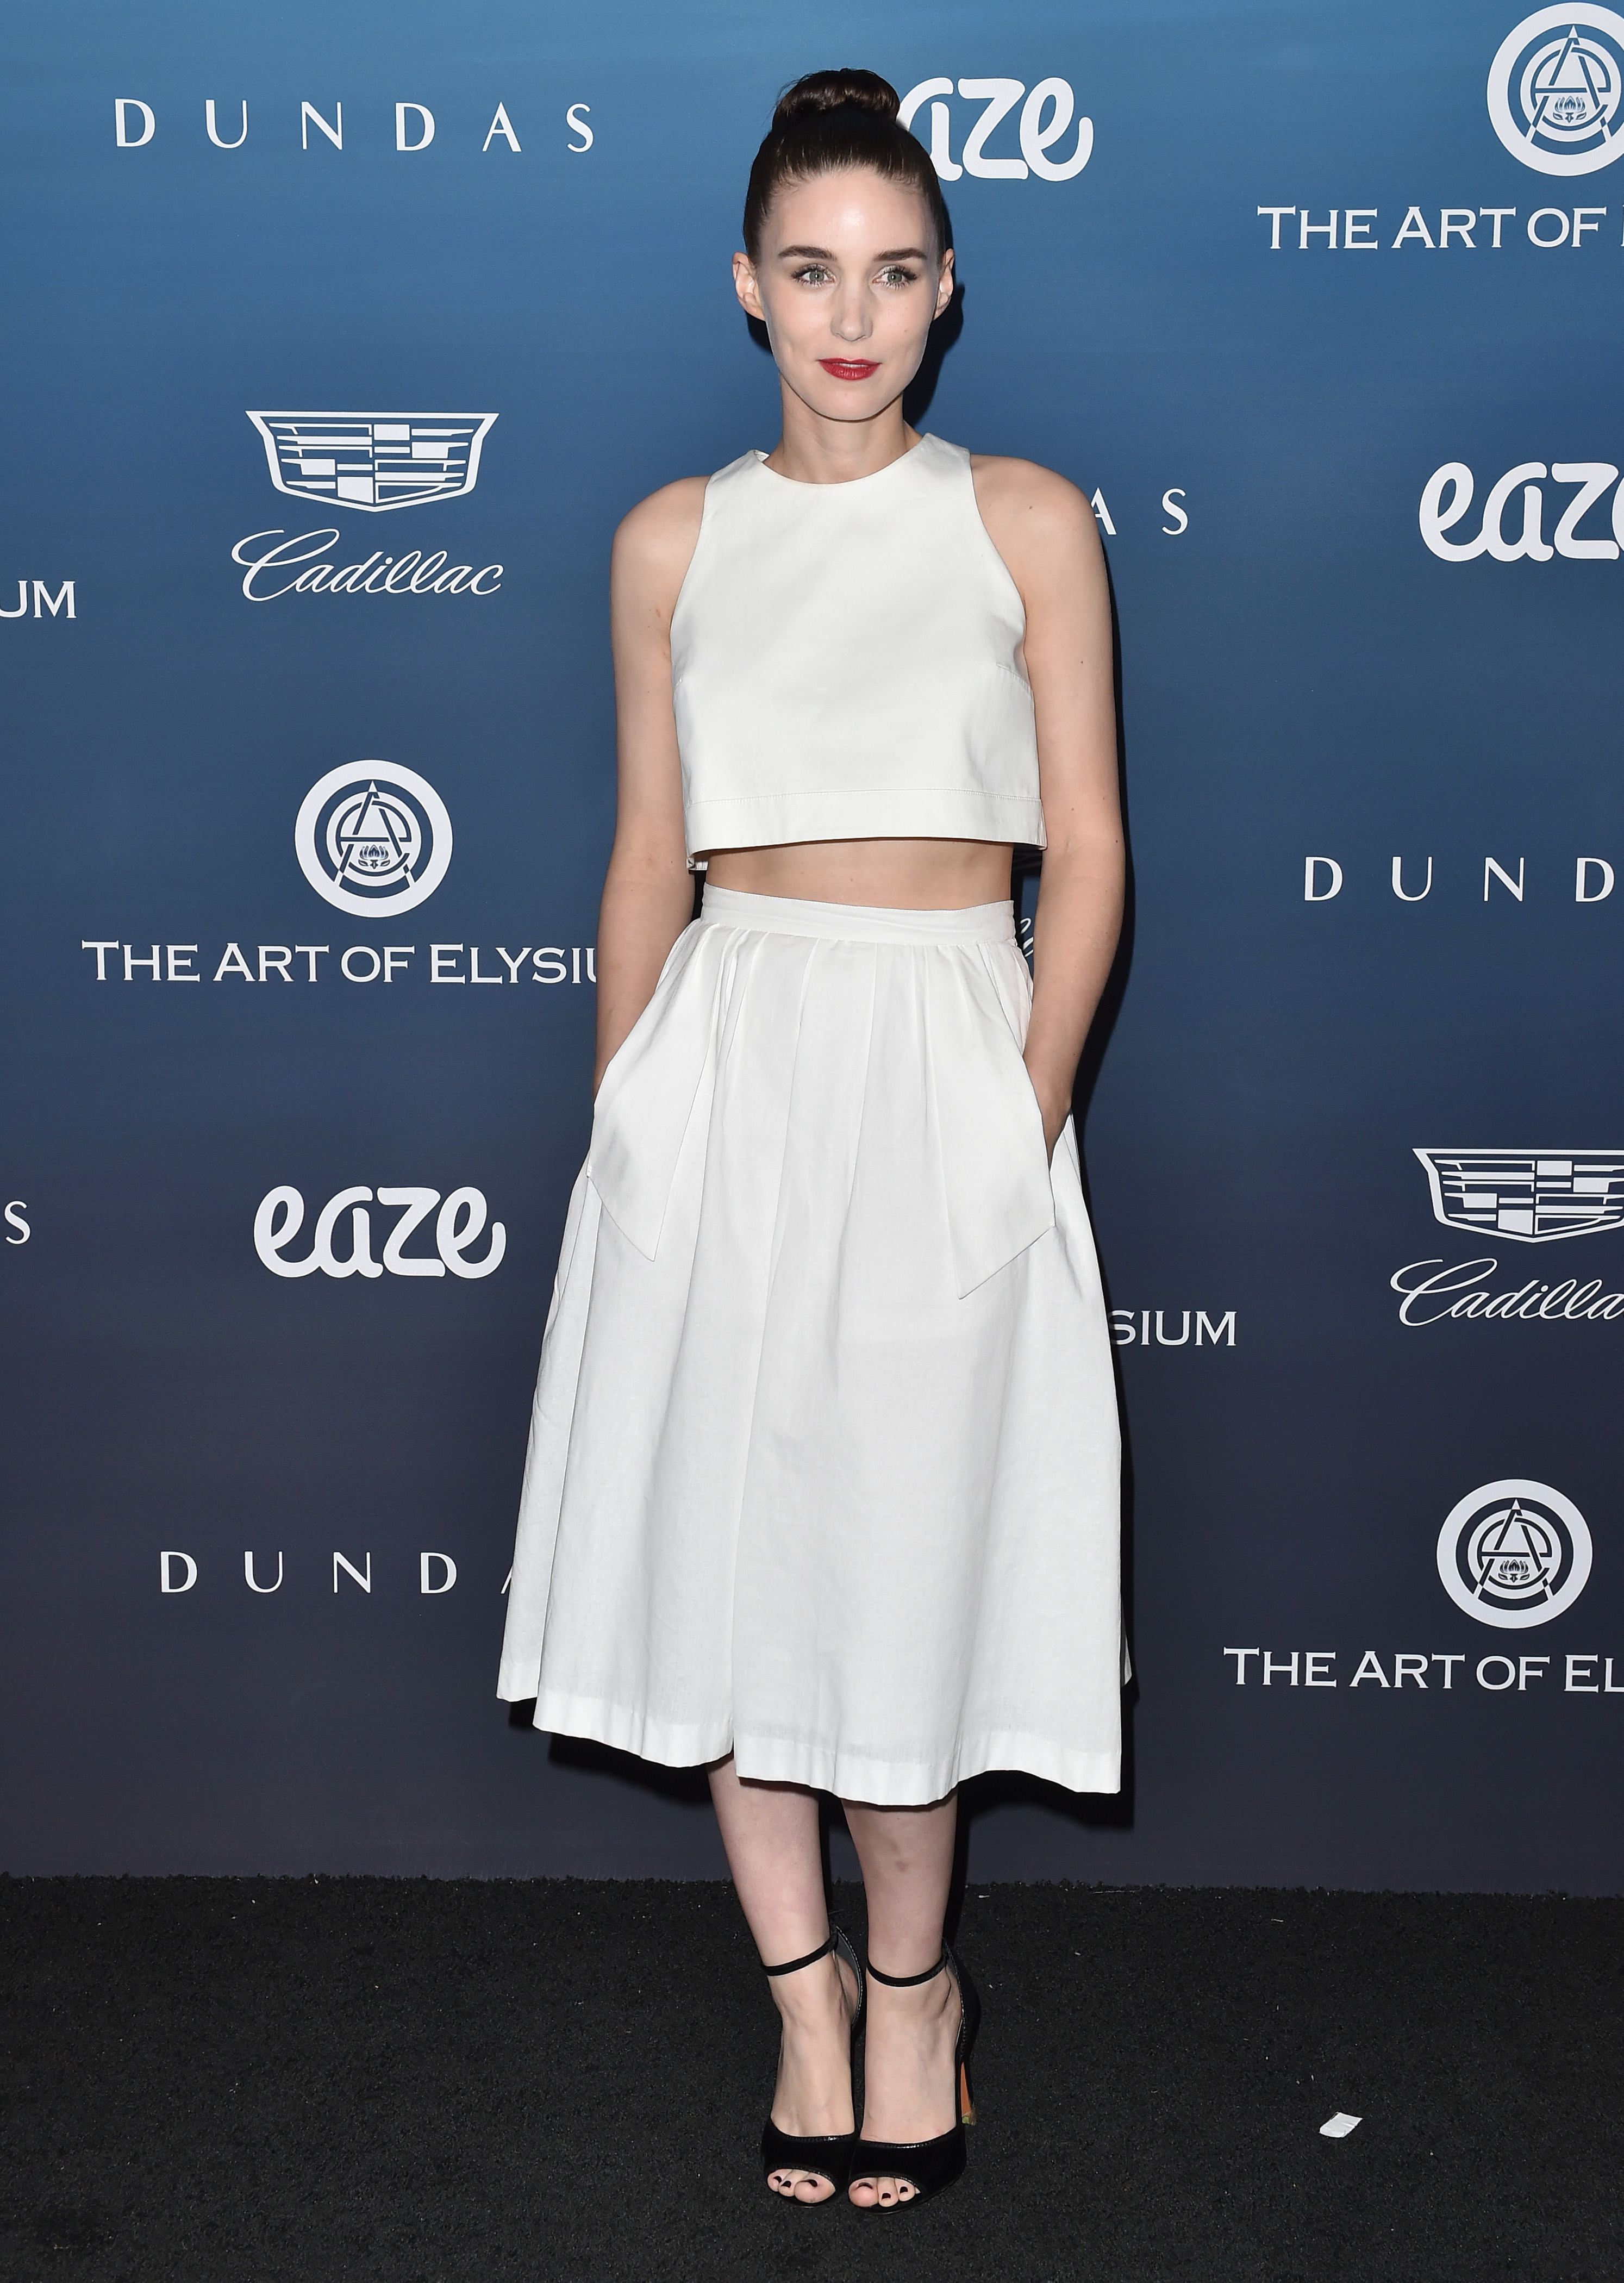 rooney mara at the art of elsyium red carpet